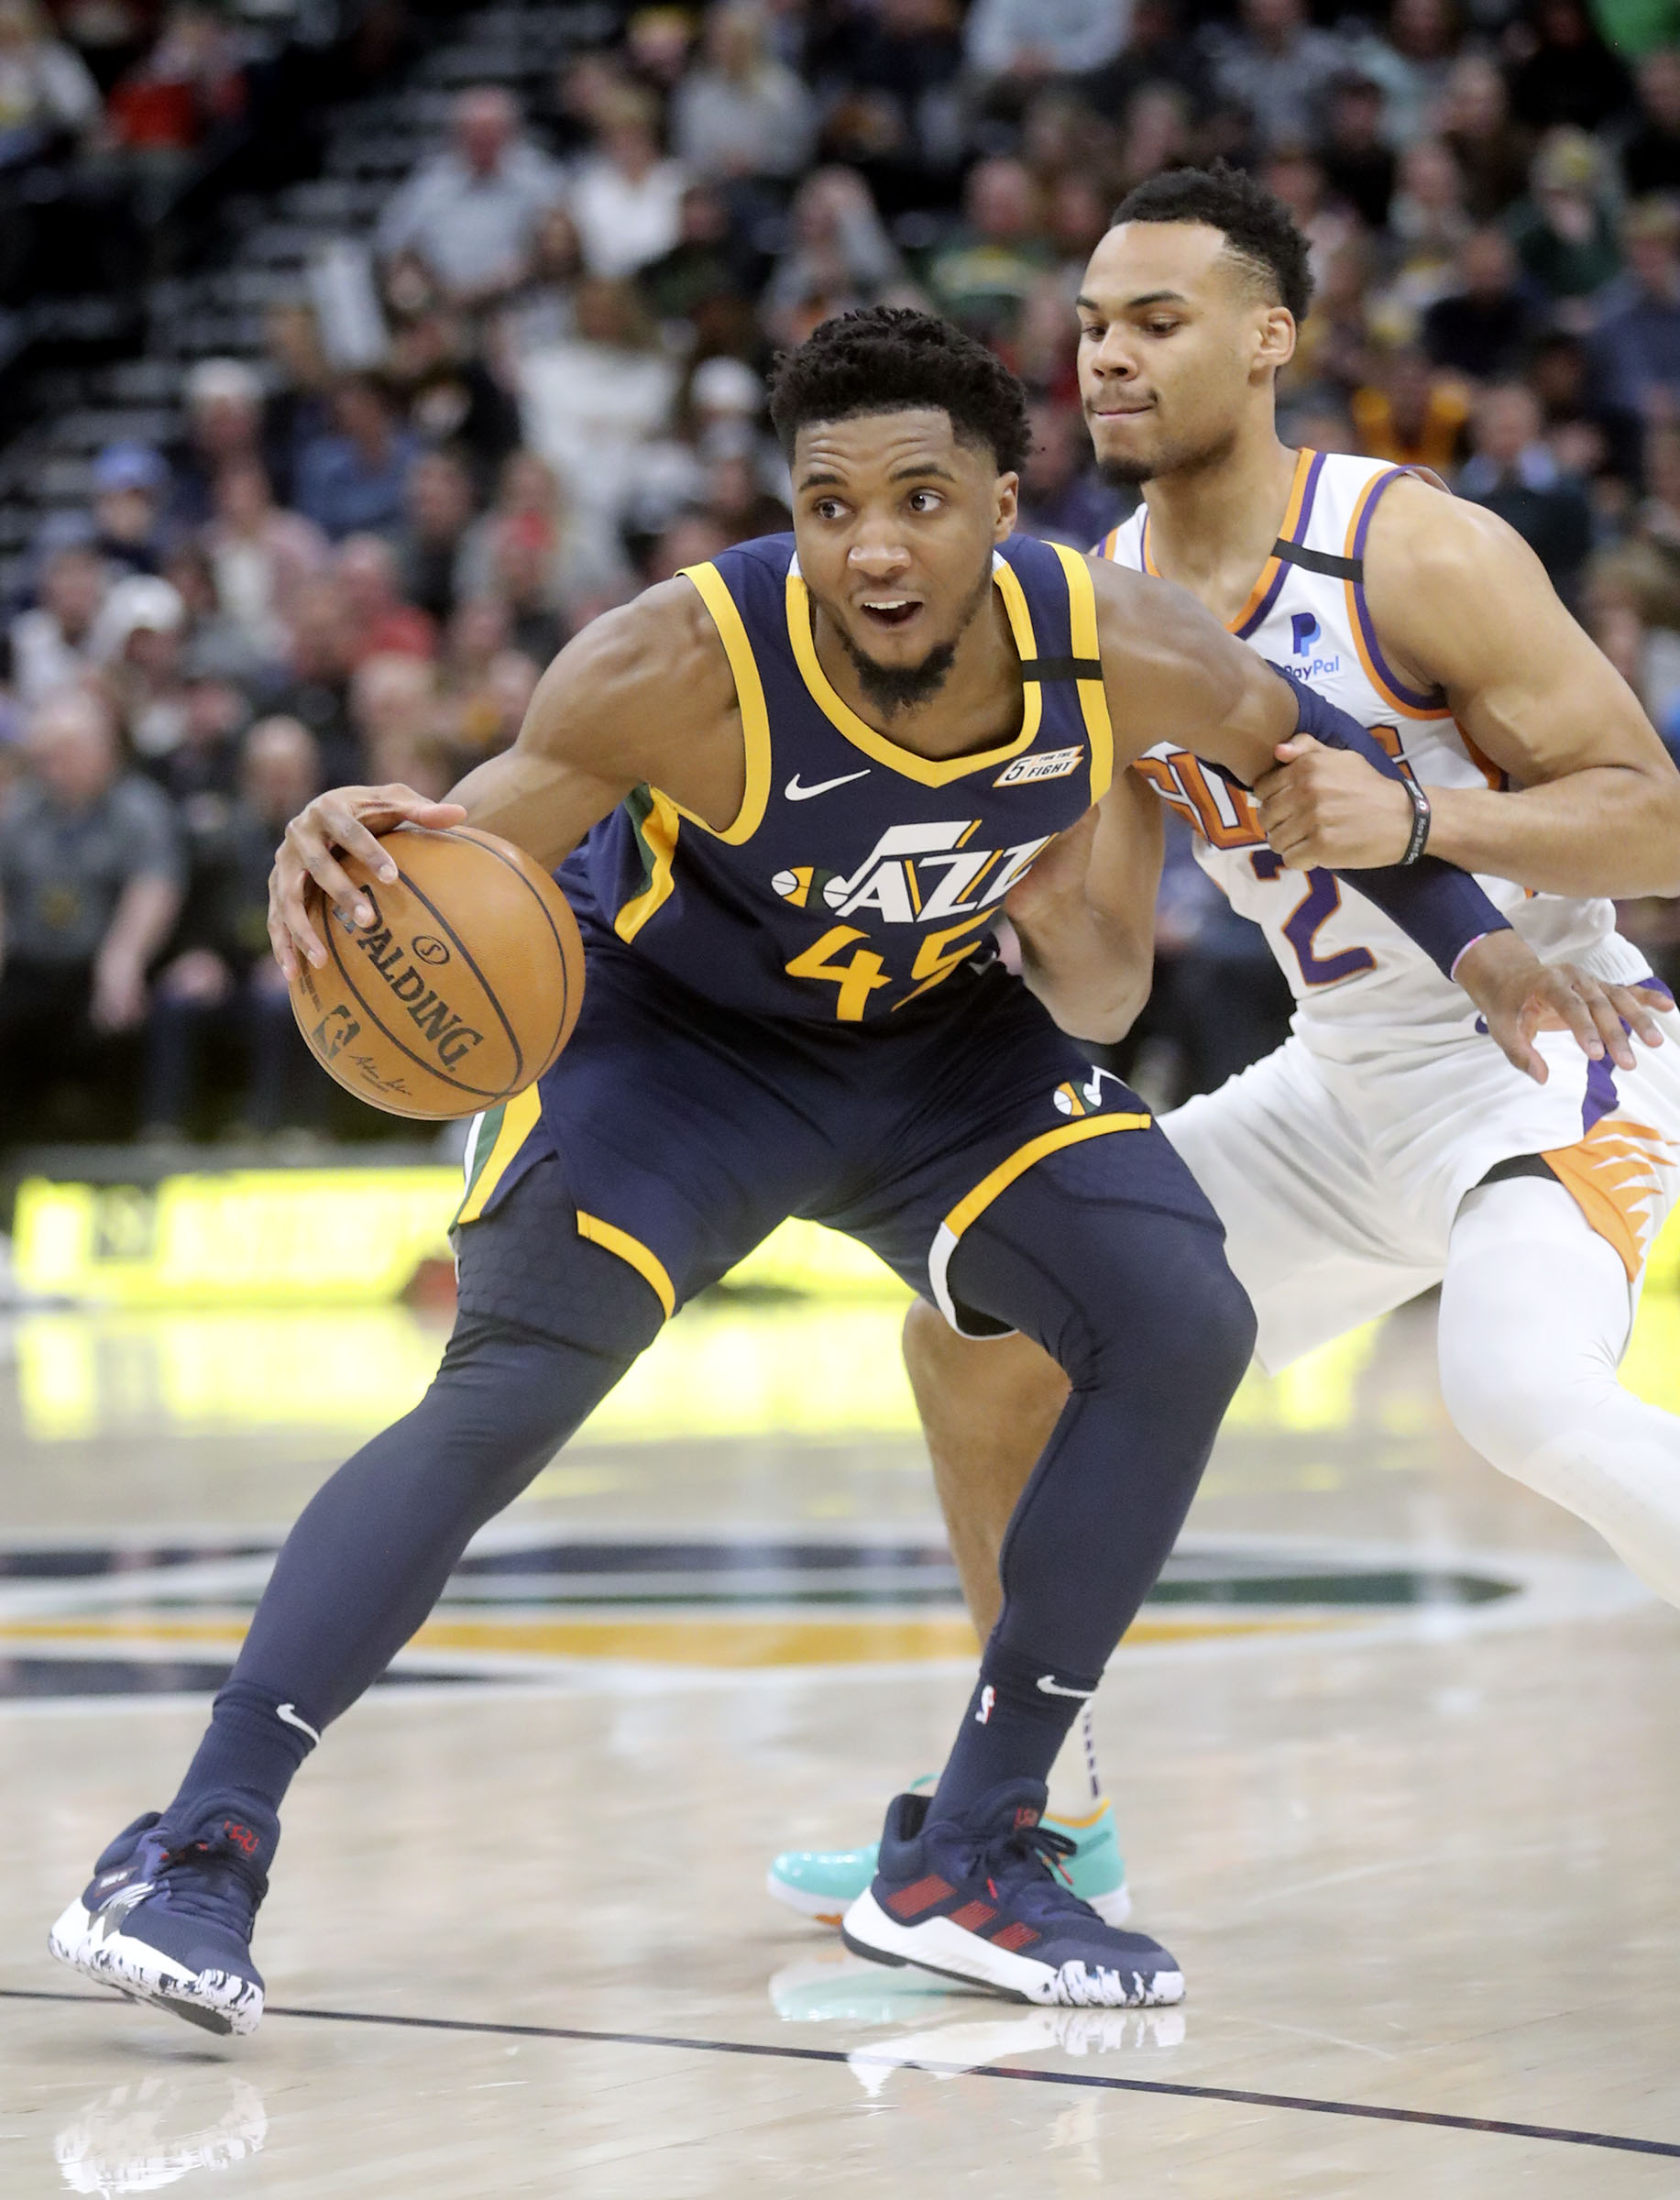 Utah Jazz guard Donovan Mitchell (45) dribbles around Phoenix Suns forward Elie Okobo (2) during an NBA game at the Vivint Smart Home Arena in Salt Lake City on Monday, Feb. 24, 2020.